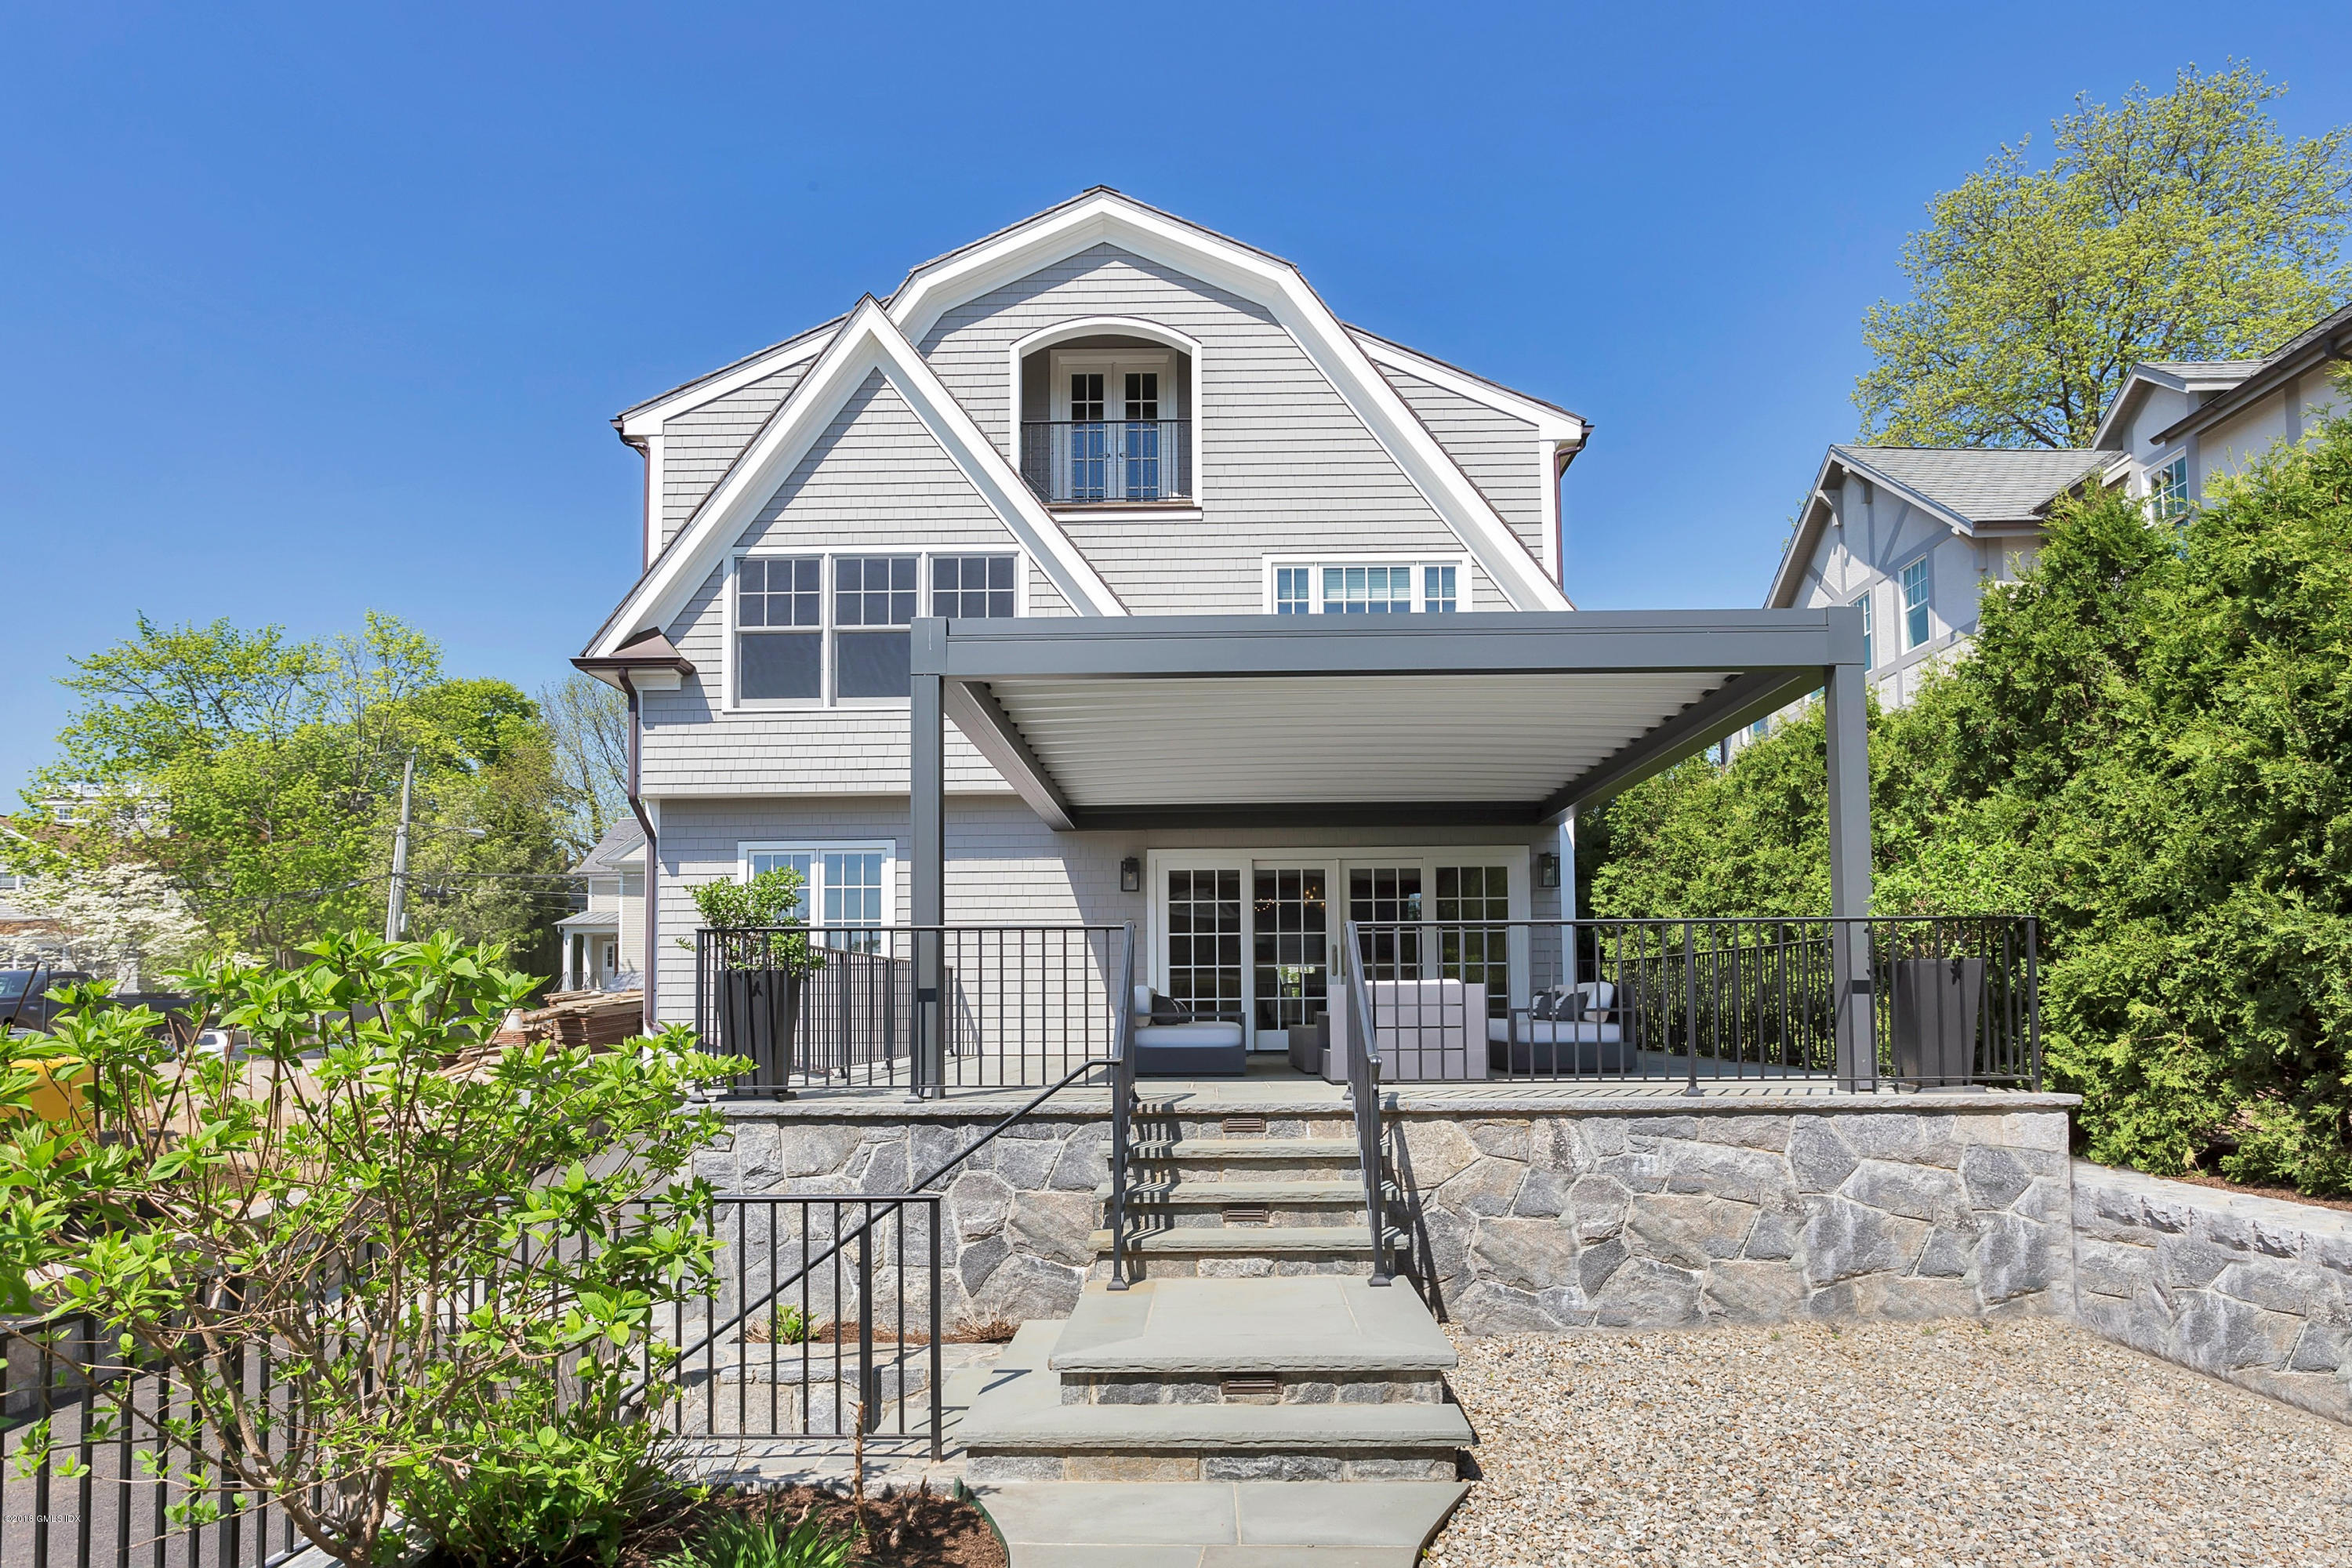 129 Havemeyer Place,Greenwich,Connecticut 06830,5 Bedrooms Bedrooms,4 BathroomsBathrooms,Single family,Havemeyer,104967